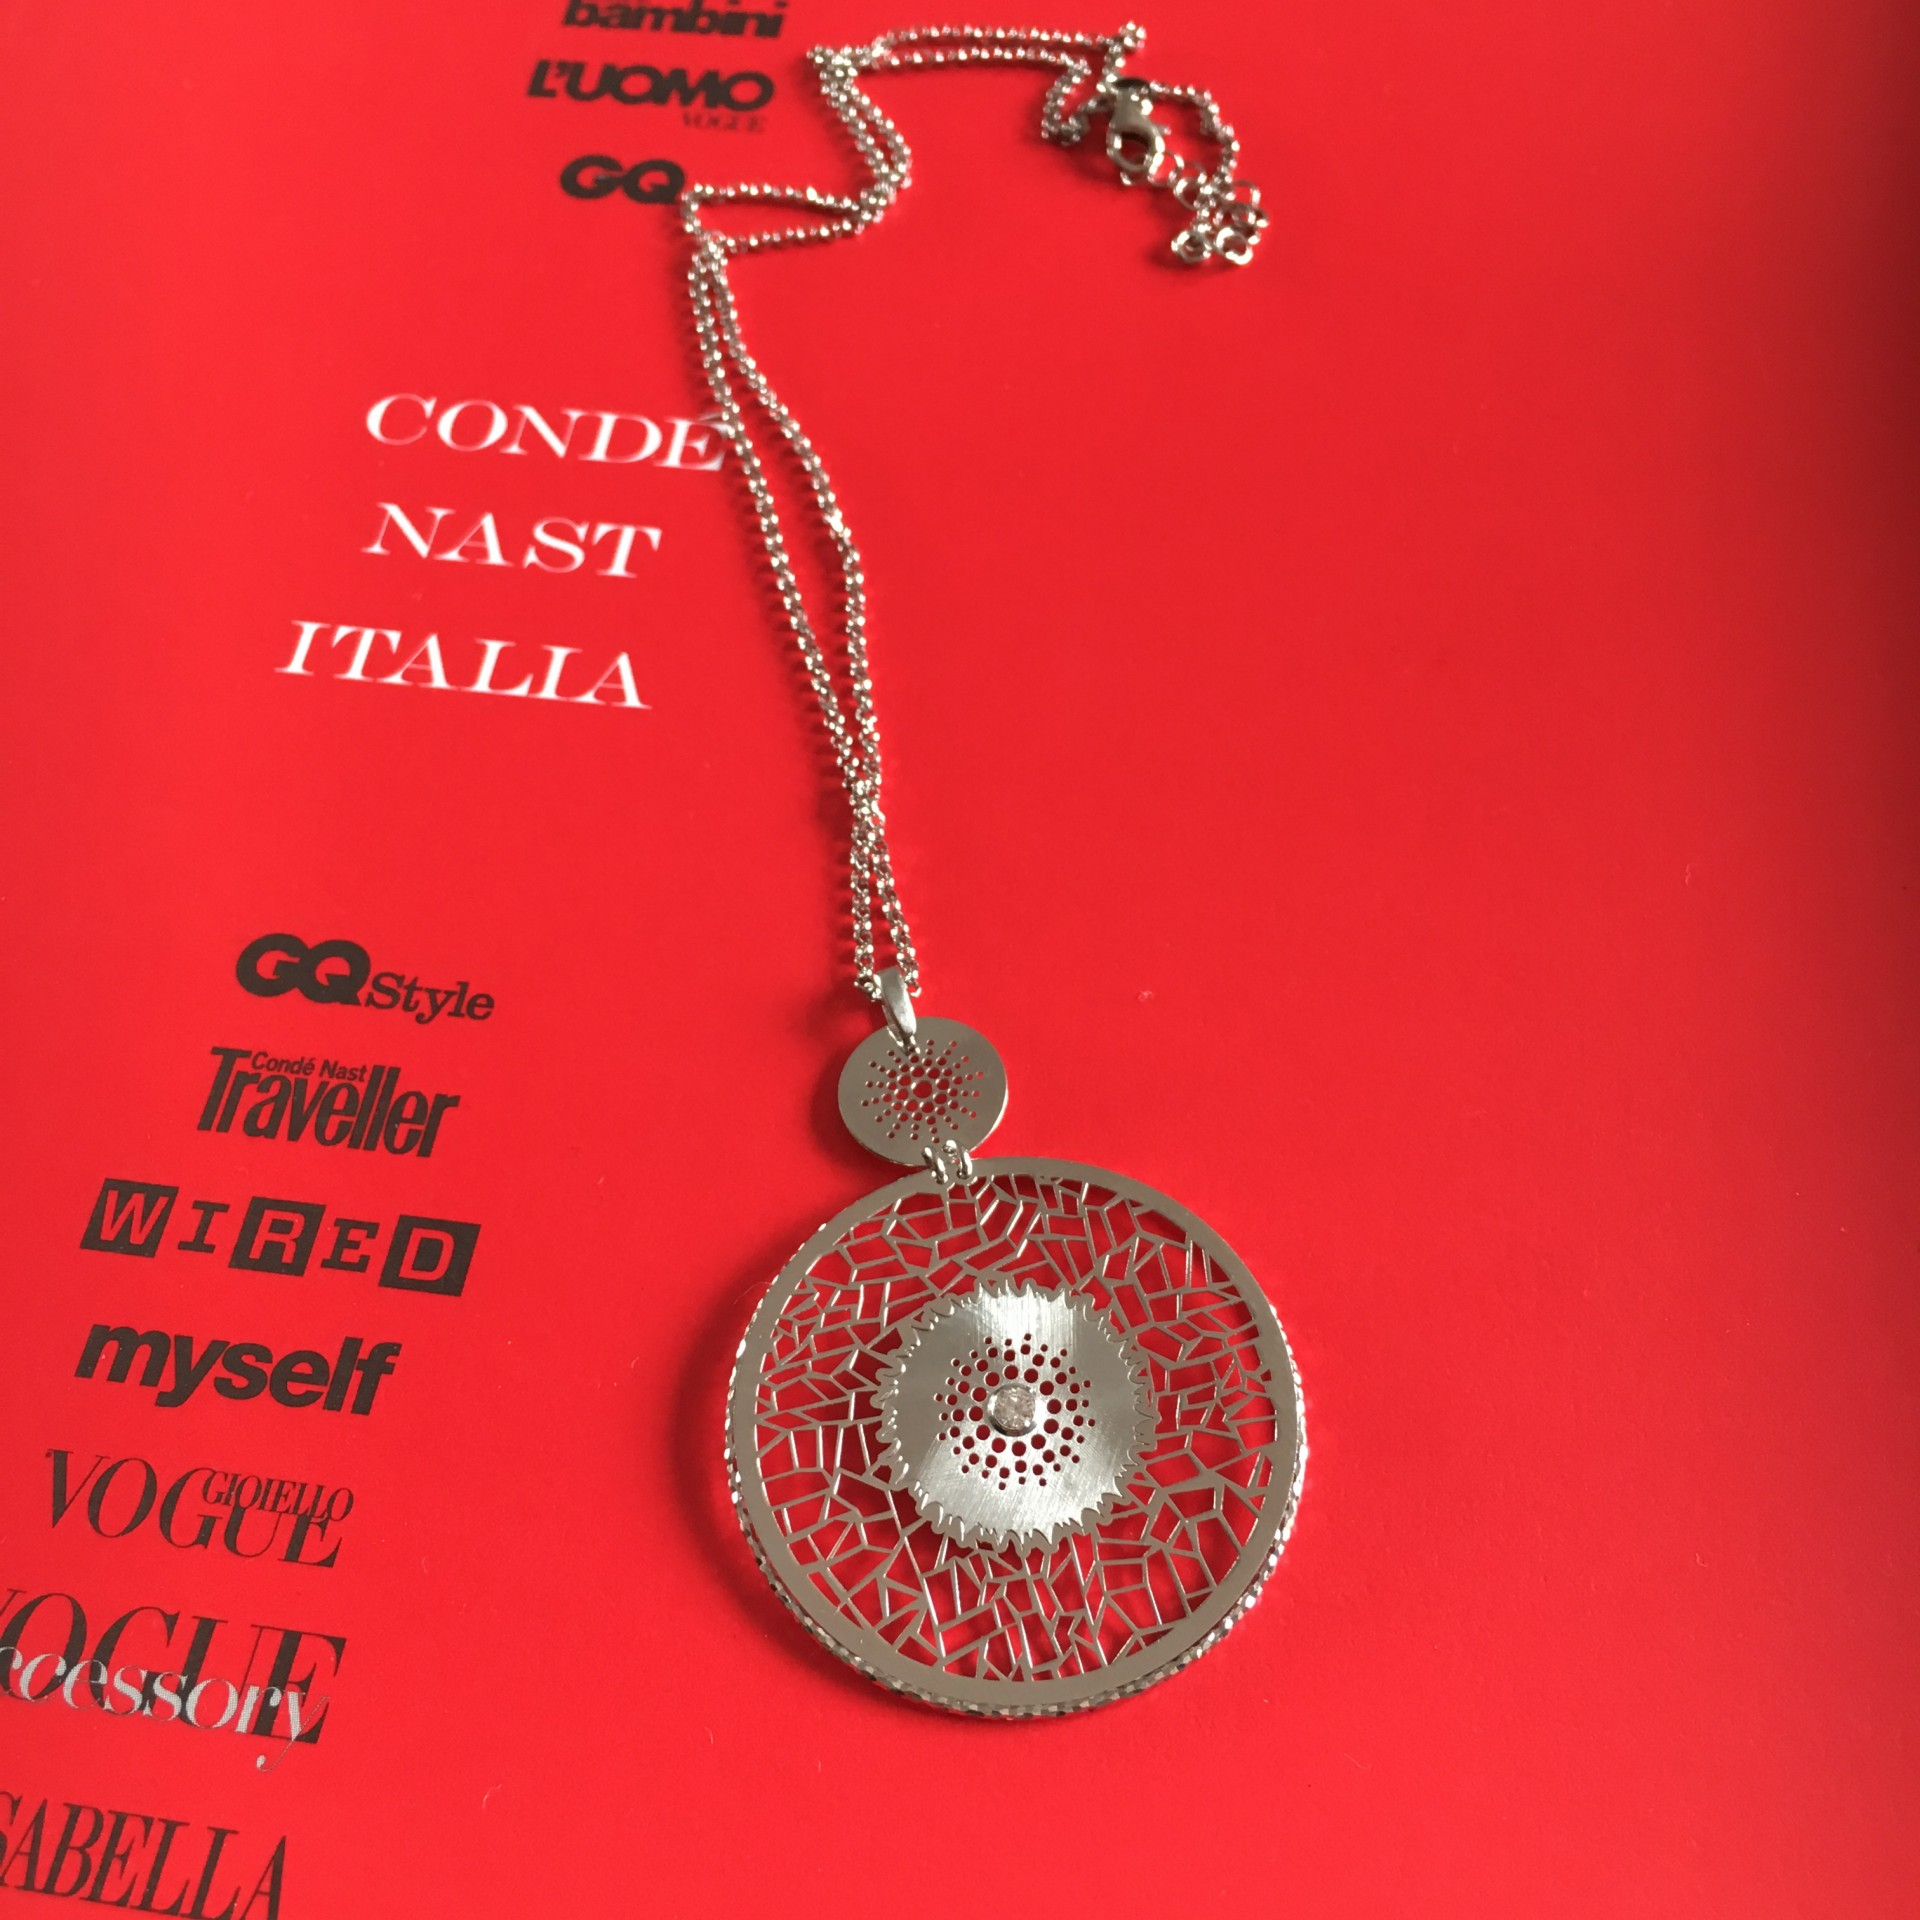 The Keep Dreaming silver necklace